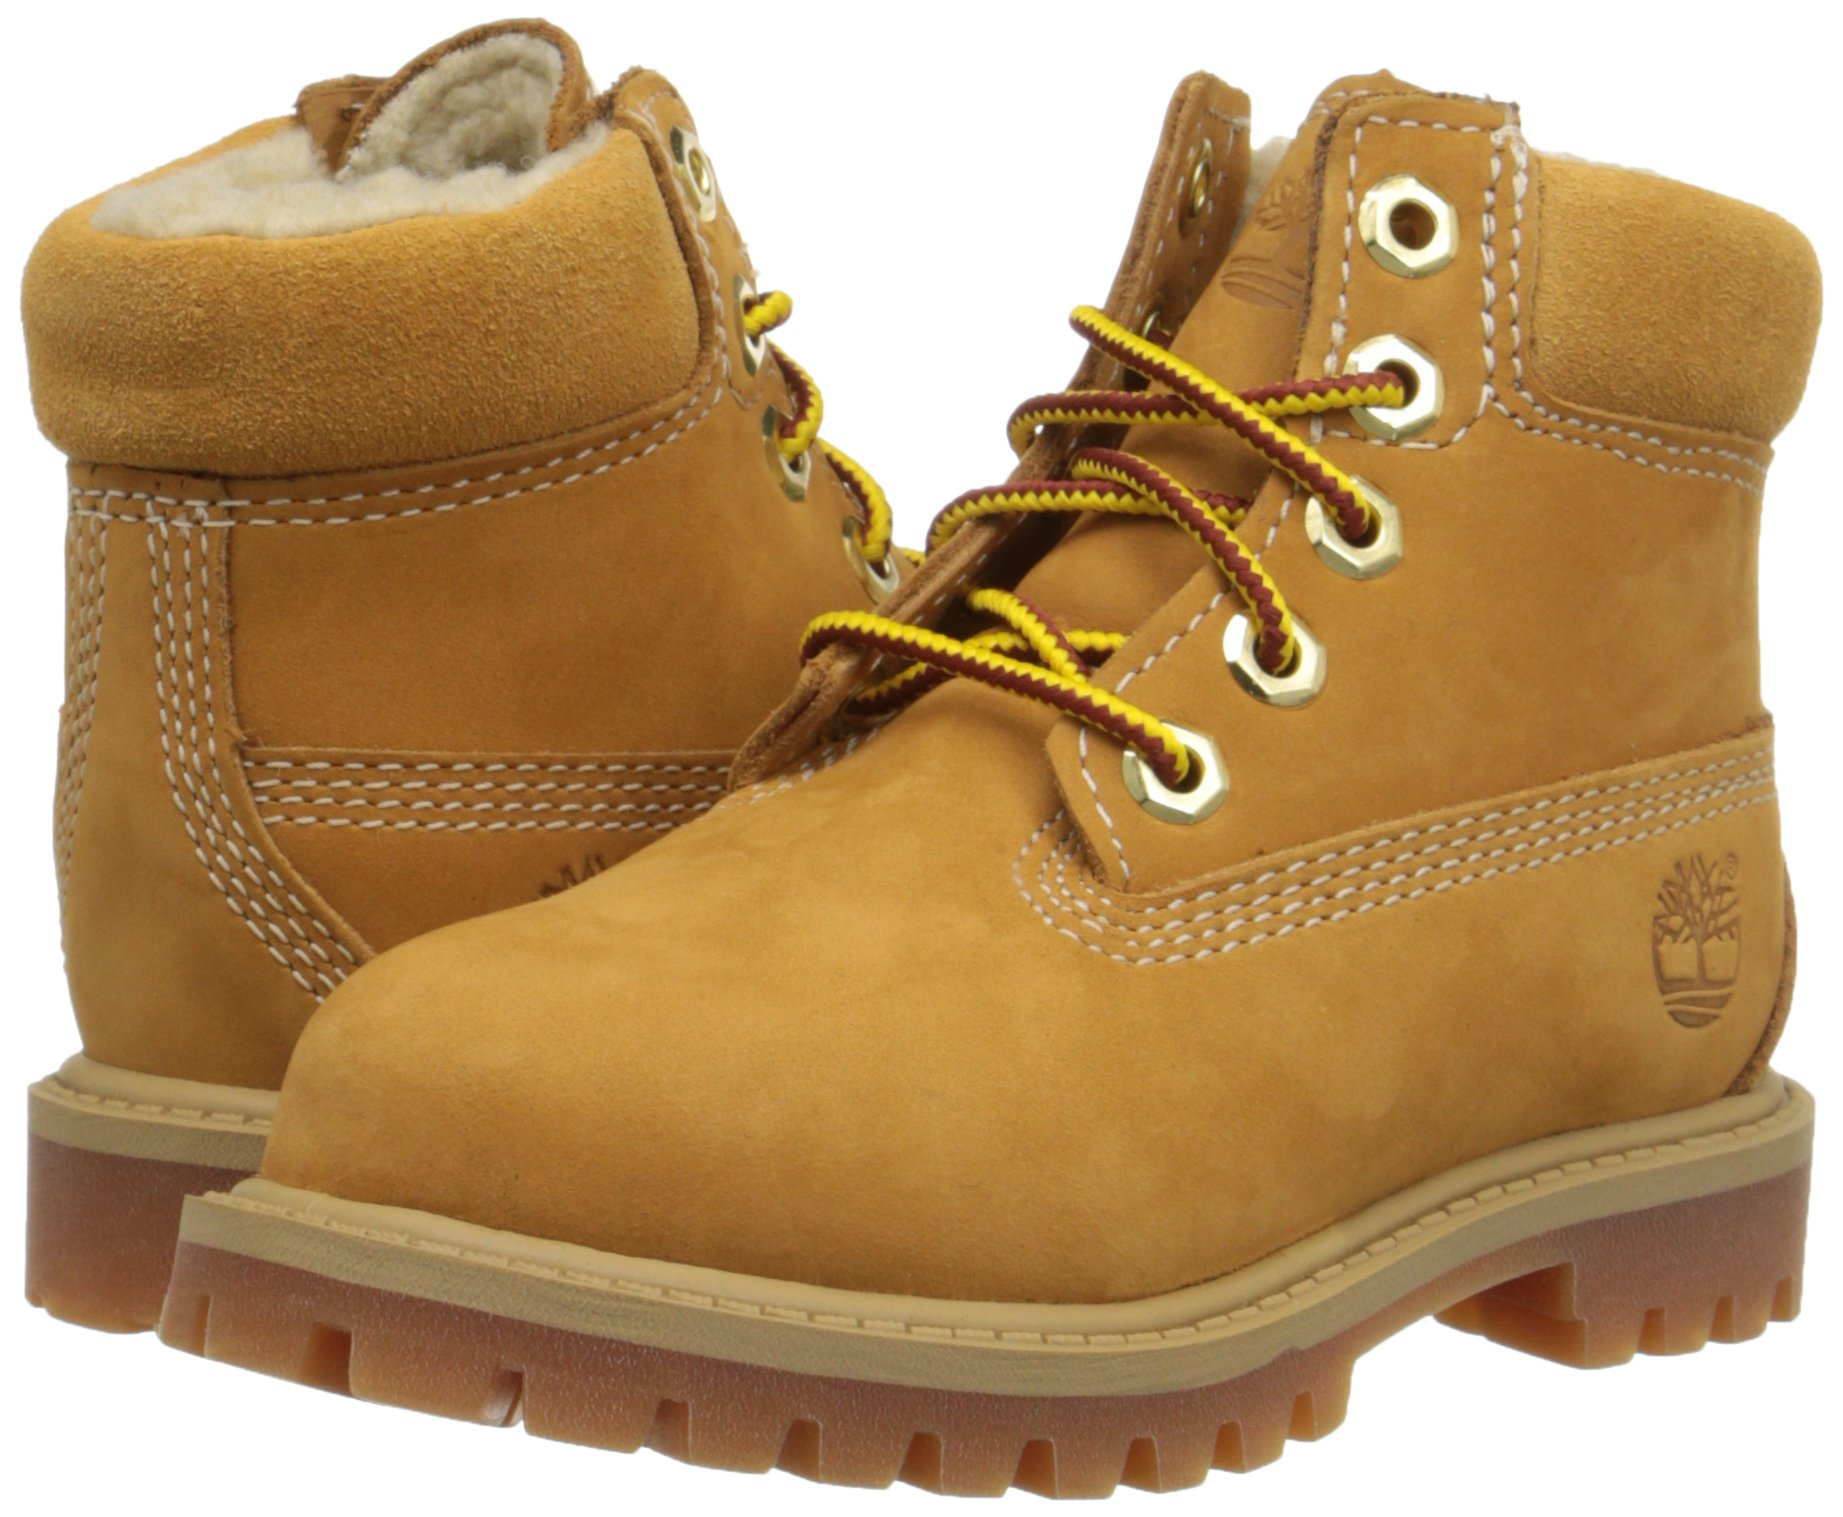 Timberland 6 Inch Premium With Faux Shearling Boot (Toddler/Little Kid/Big Kid), Wheat Nubuck, 4 M US Big Kid by Timberland (Image #6)